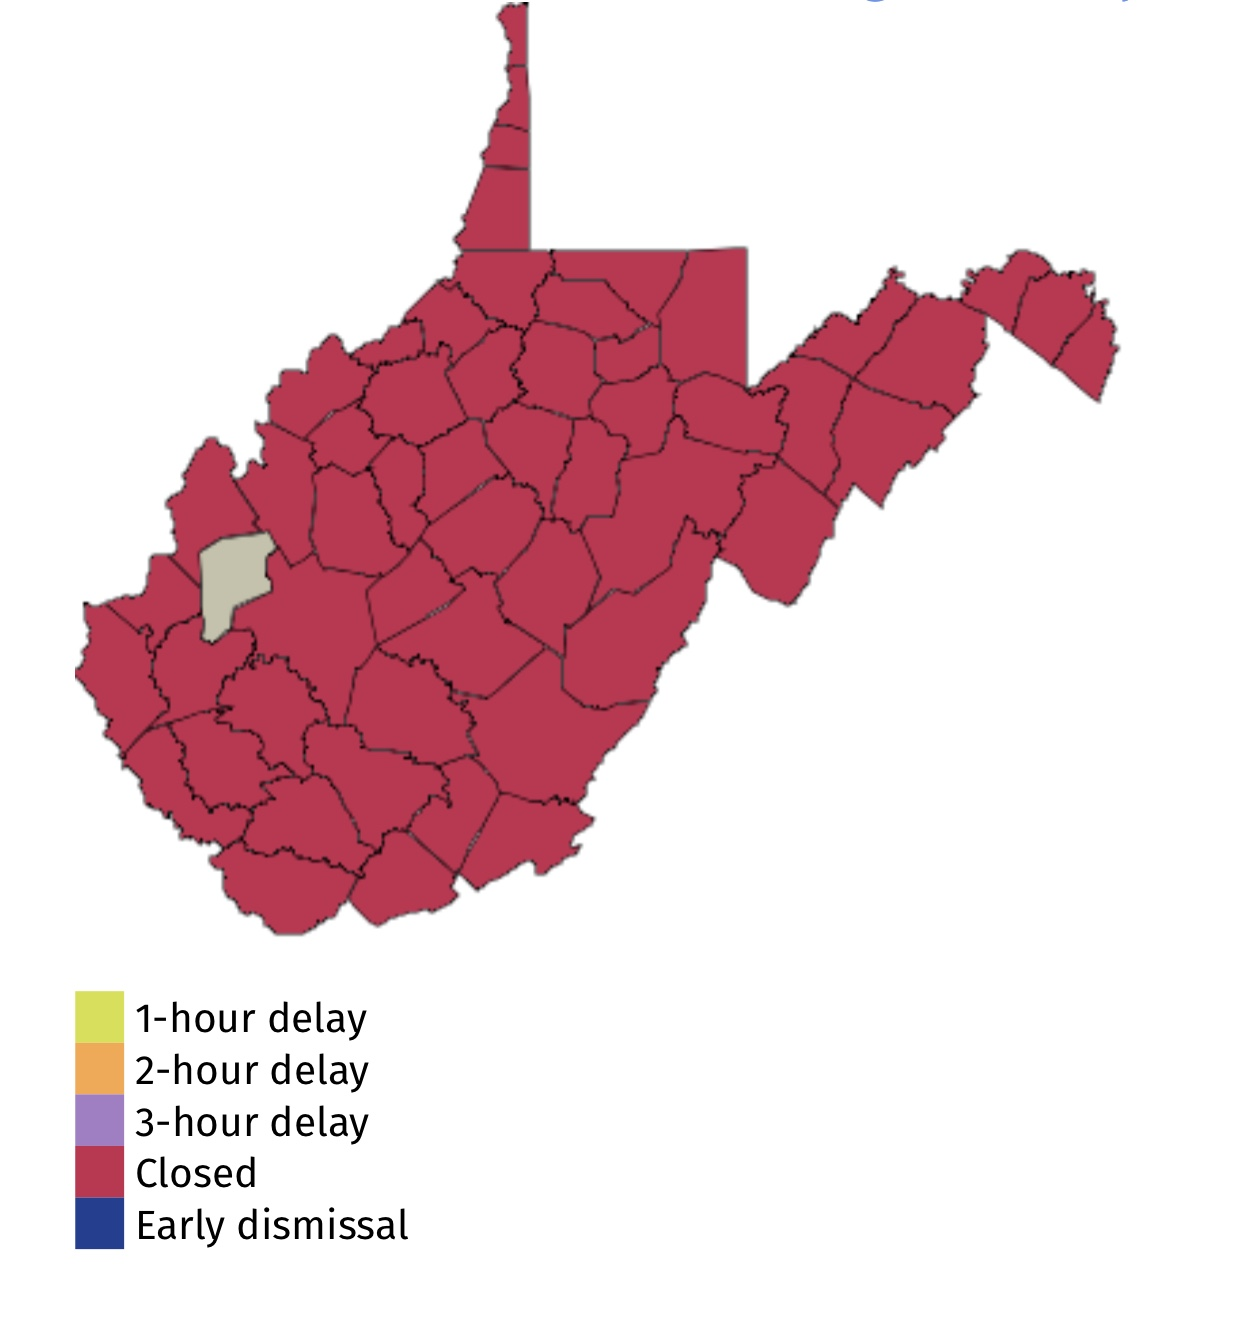 54 Out Of 55 West Virginia County Schools Closed Tuesday